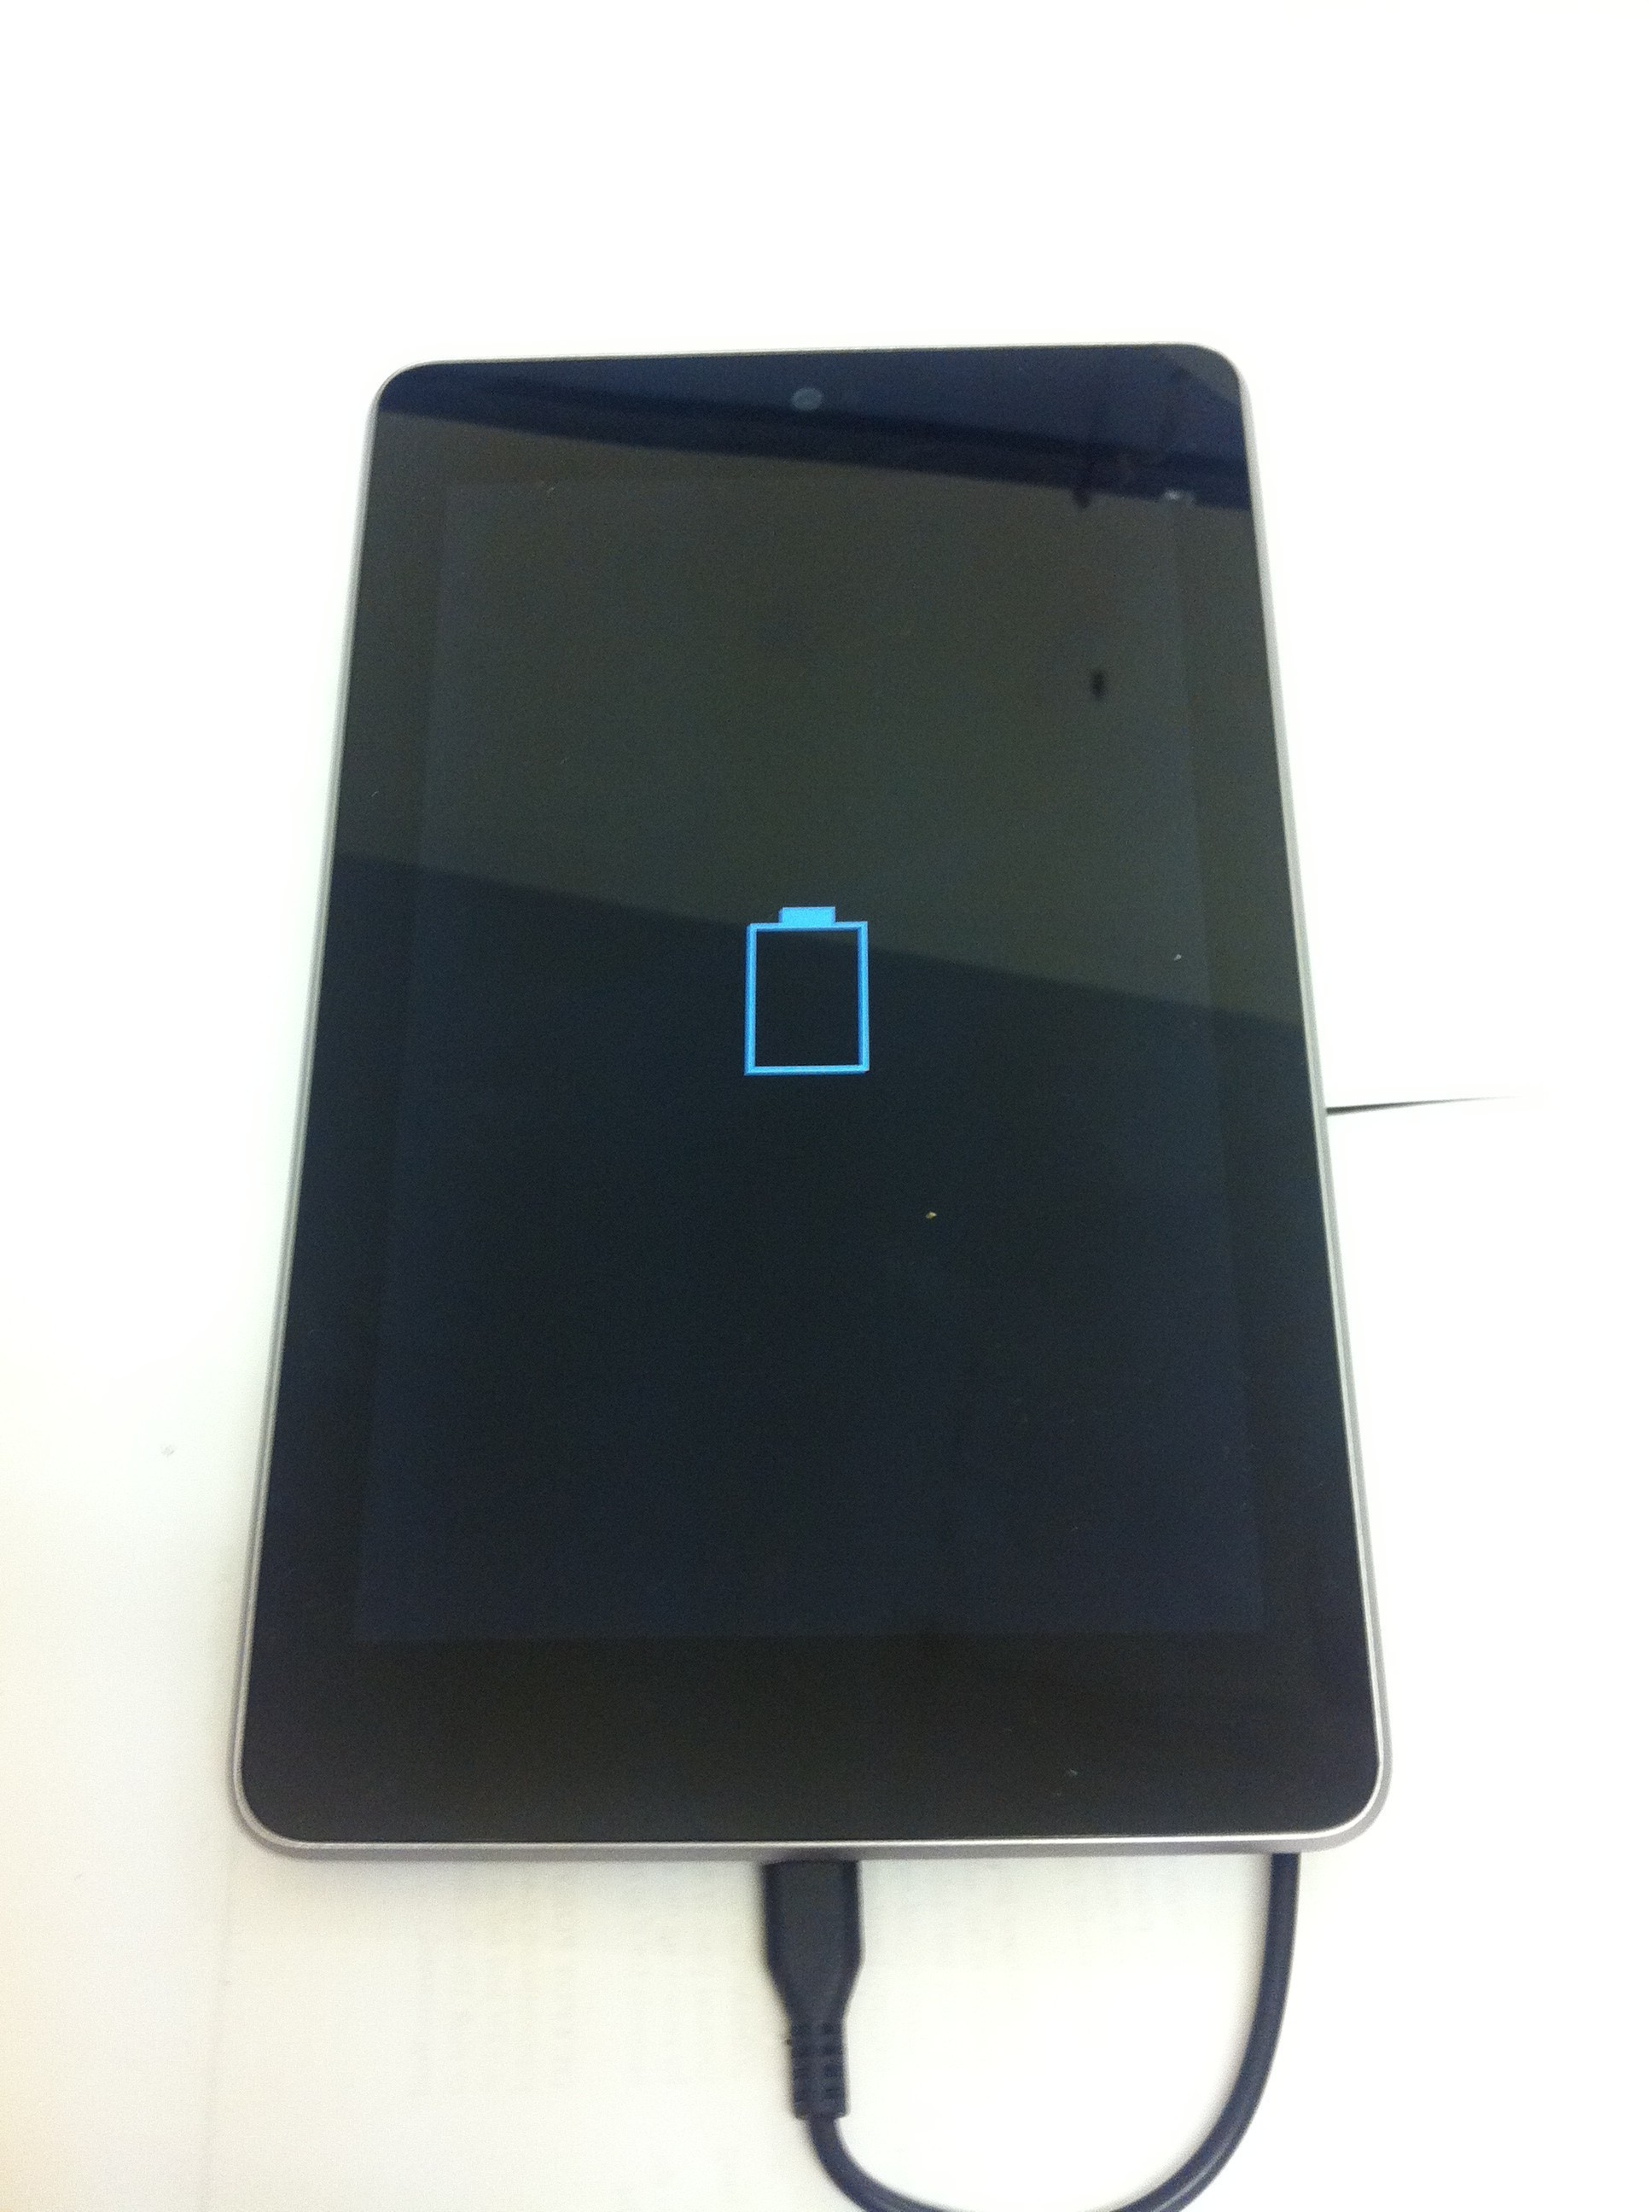 Nexus 7 Battery Faulty Repairnew Batterynot Chargingboltonuk Xbox360 Slim Reset Glitch Hack Rgh Modification Service Pictures To